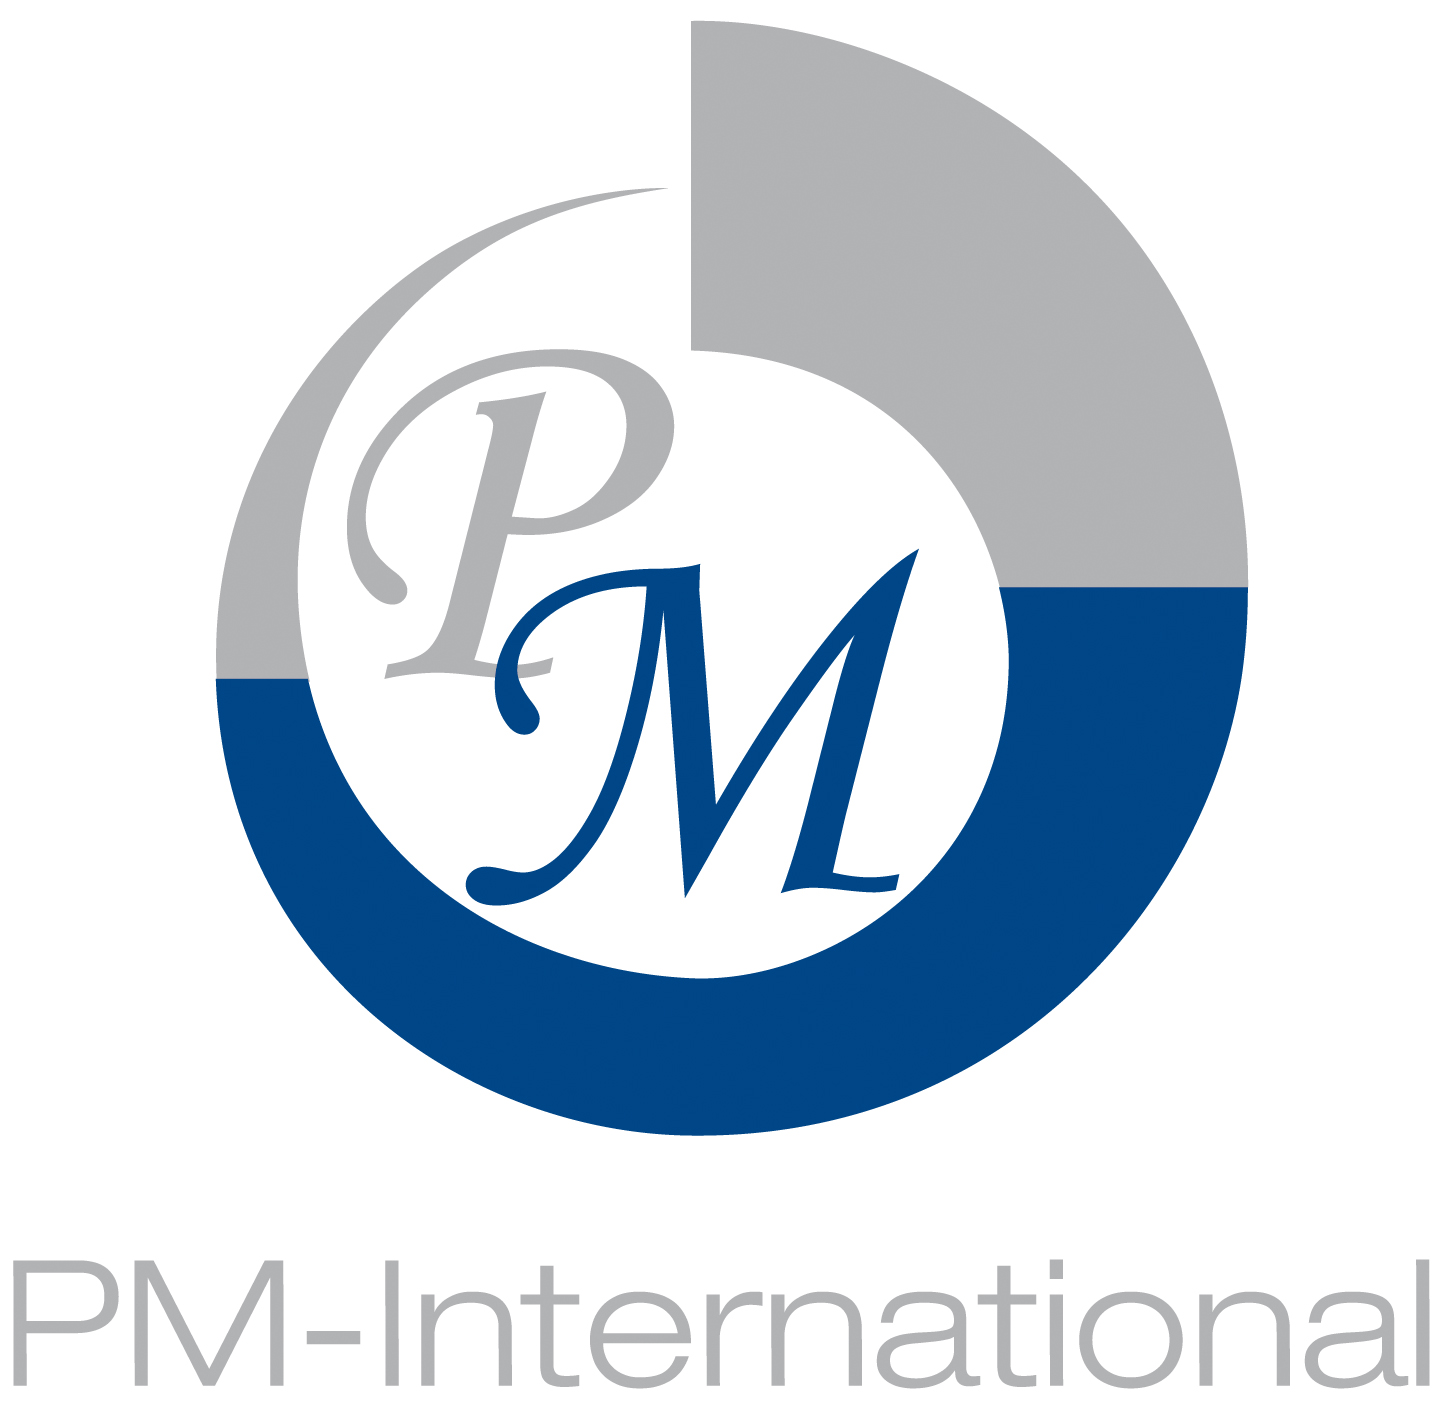 Come guadagnare online e come trovare referrals gratis con Pm International